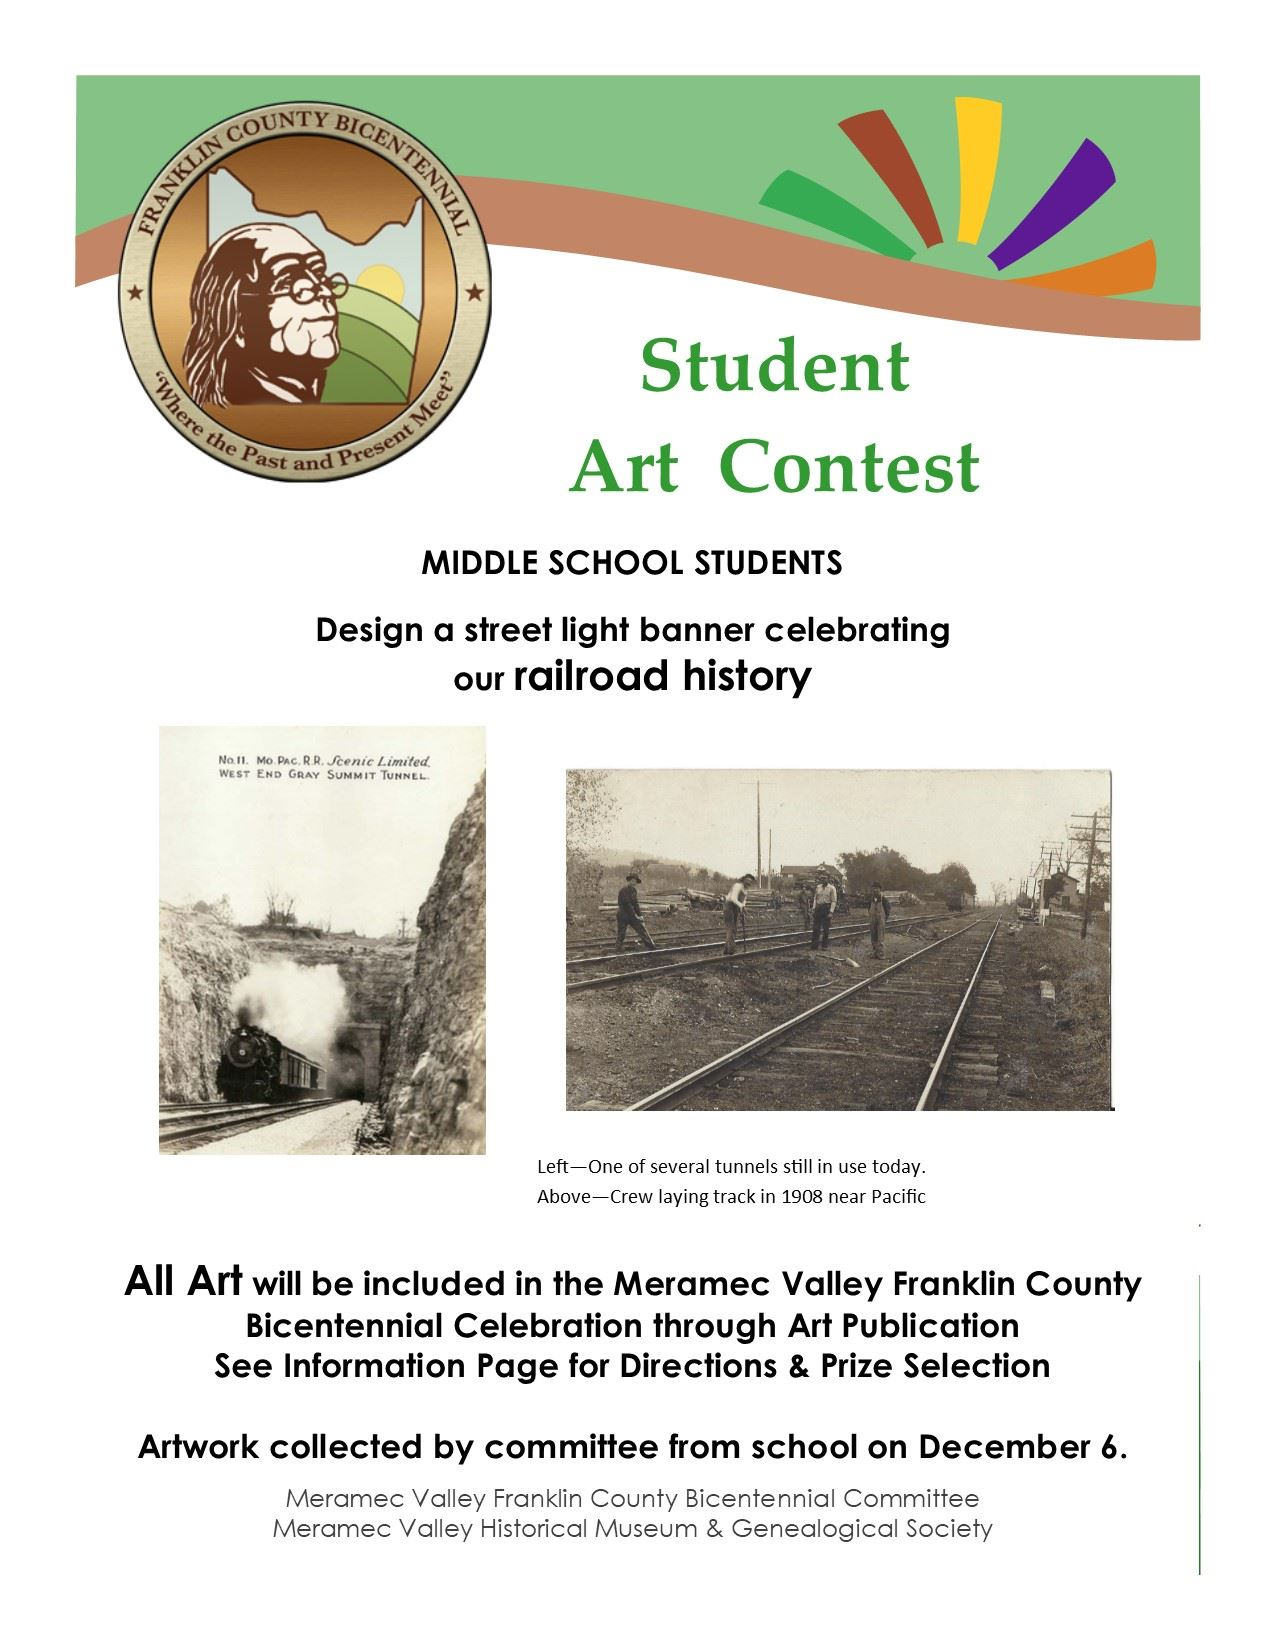 Bicentennial Art Contest Flyer Middle